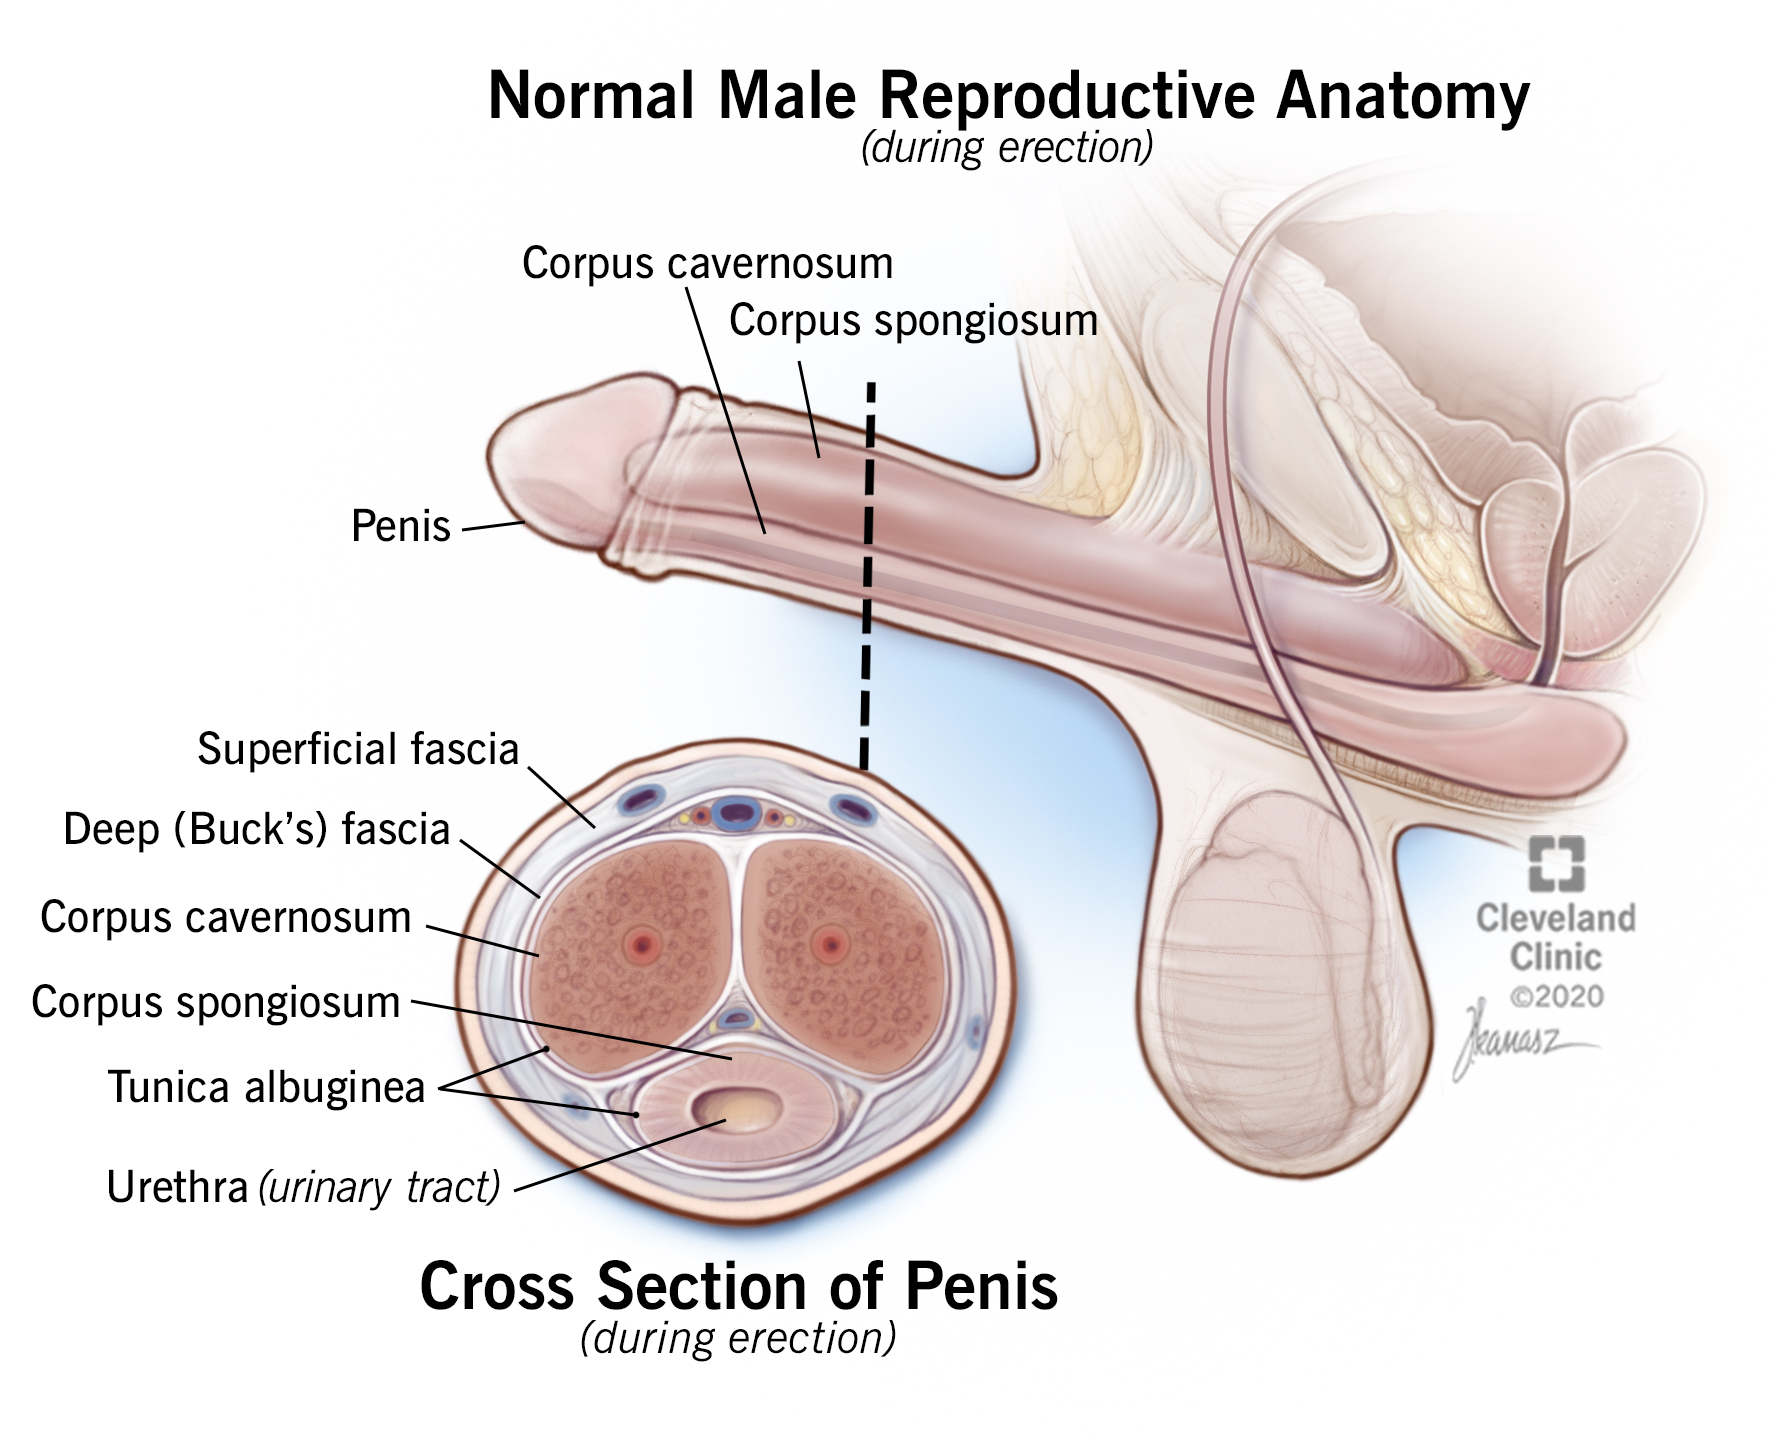 Normal male reproductive anatomy  featuring a cross section of the penis during erection.